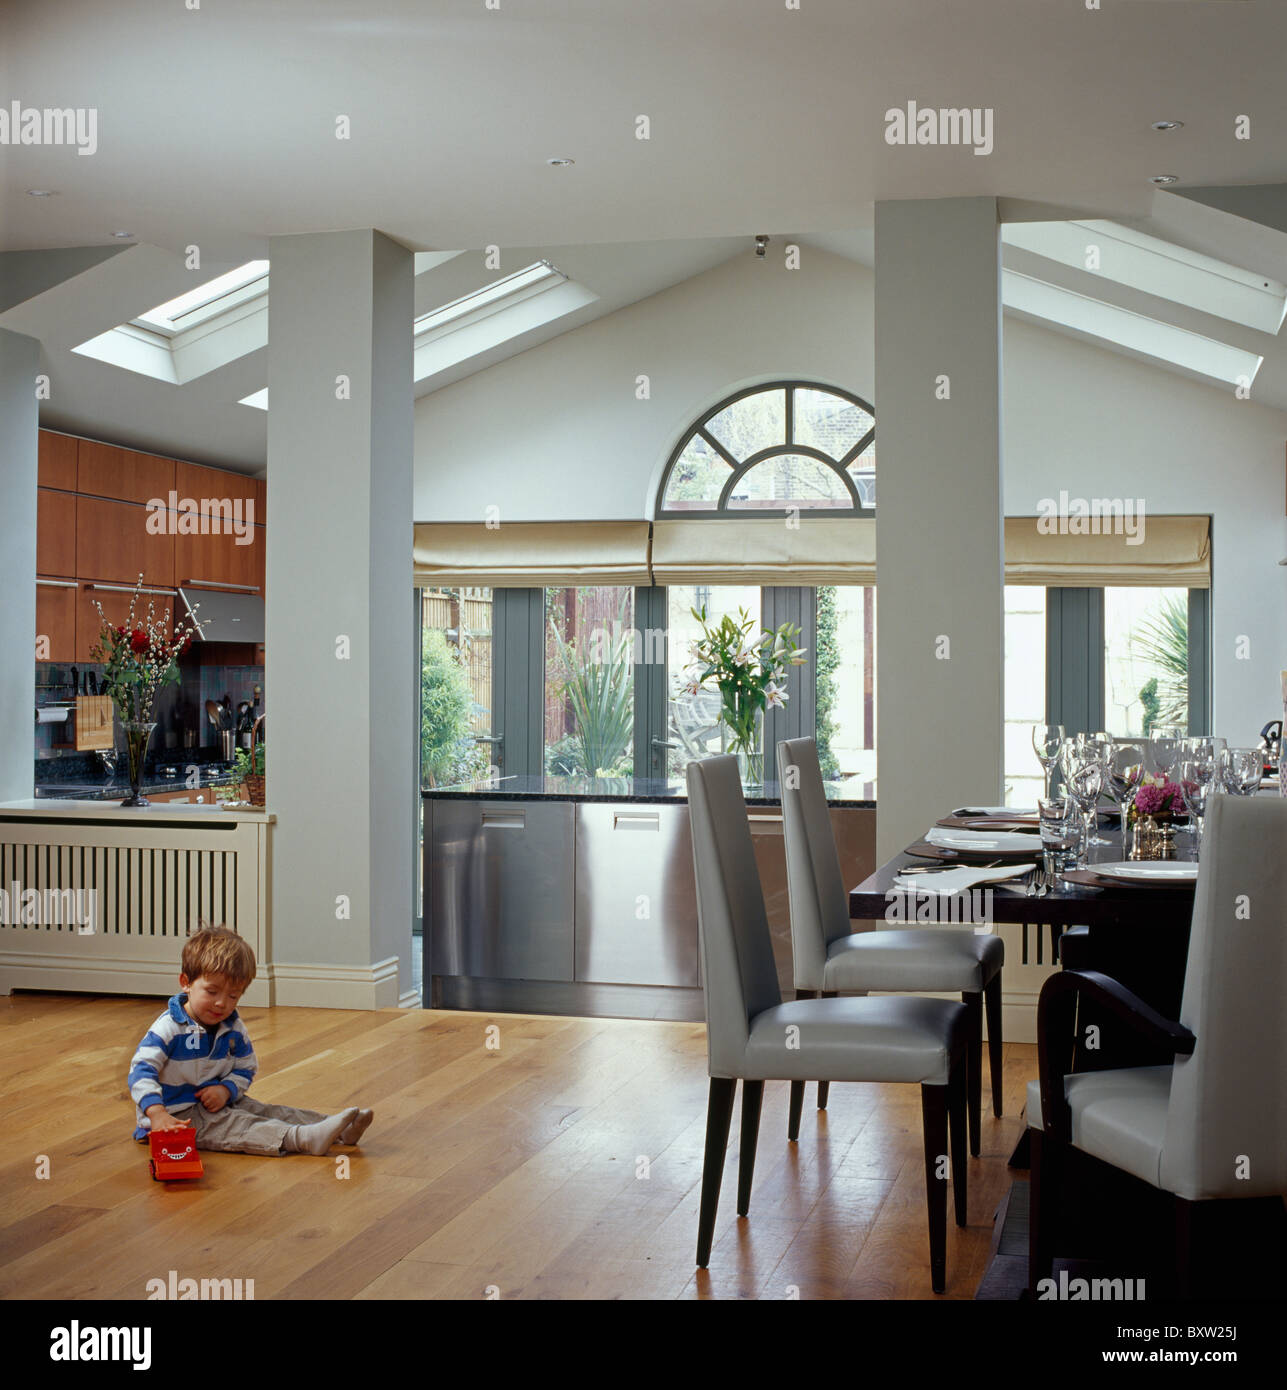 Small boy sitting on wooden floor of modern kitchen dining for Dining room extension ideas